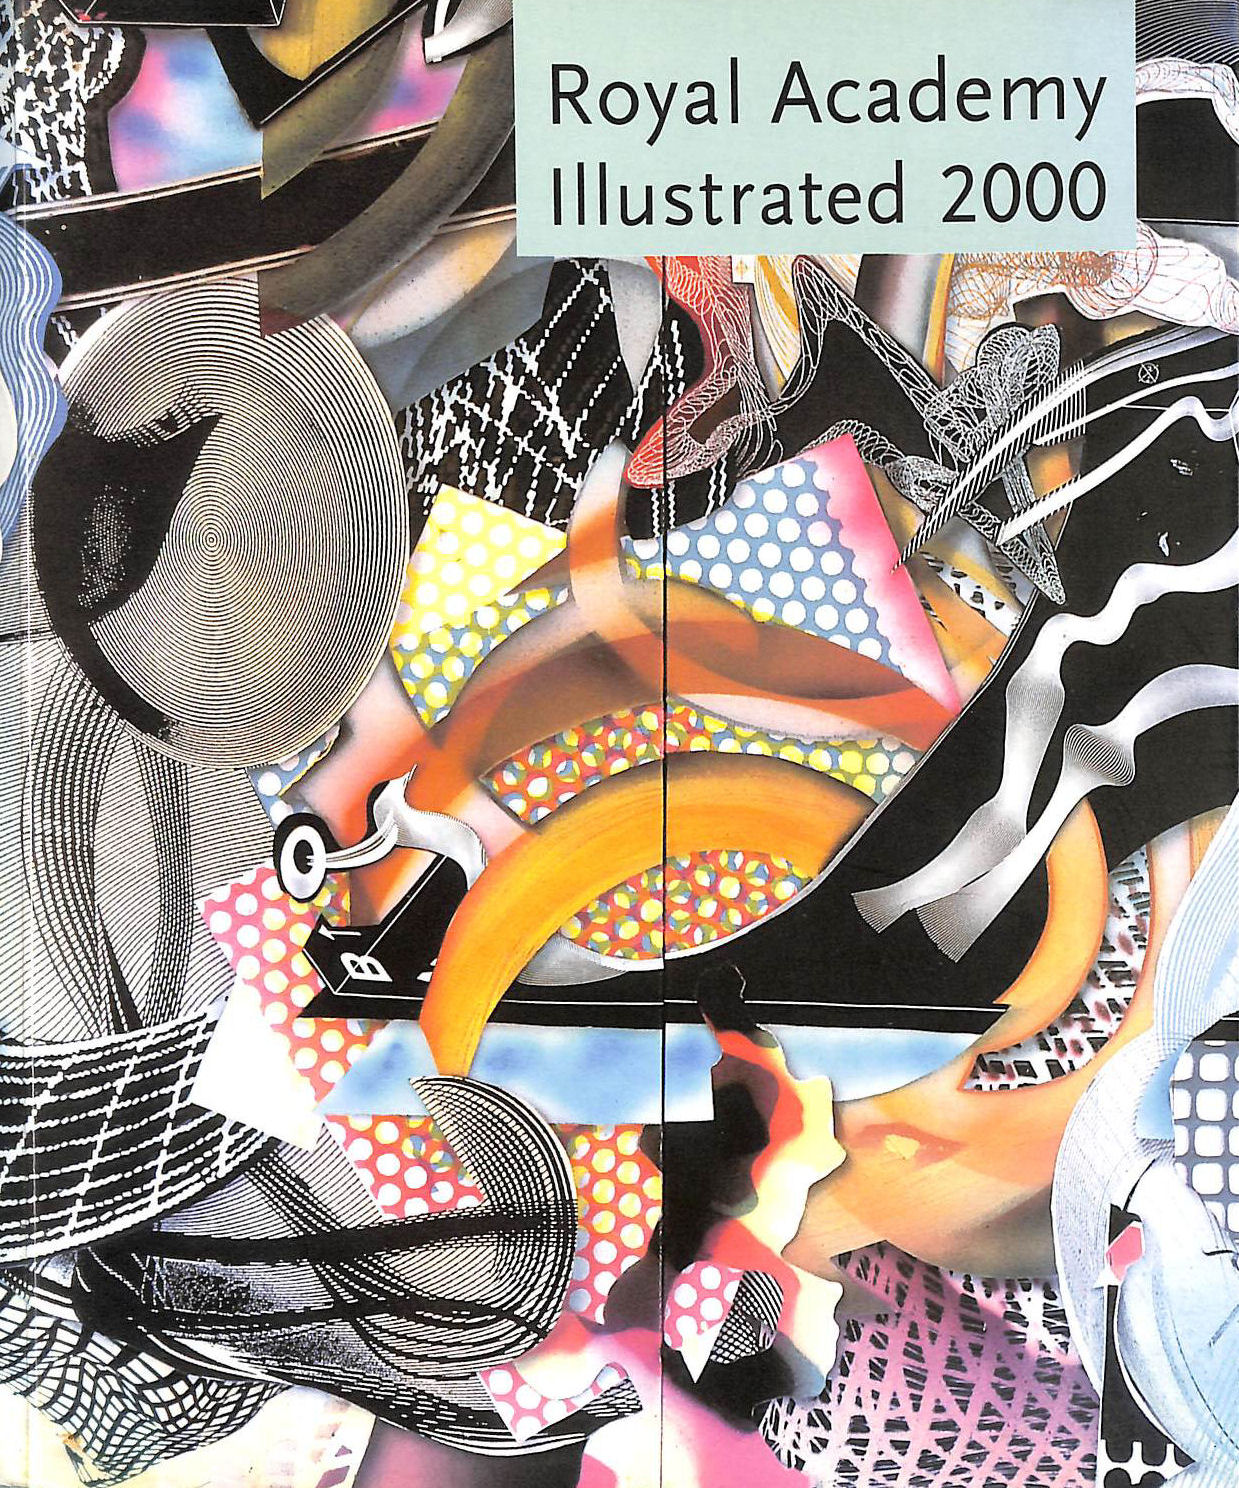 Image for Royal Academy Illustrated 2000: A selection from the 232nd Summer Exhibition